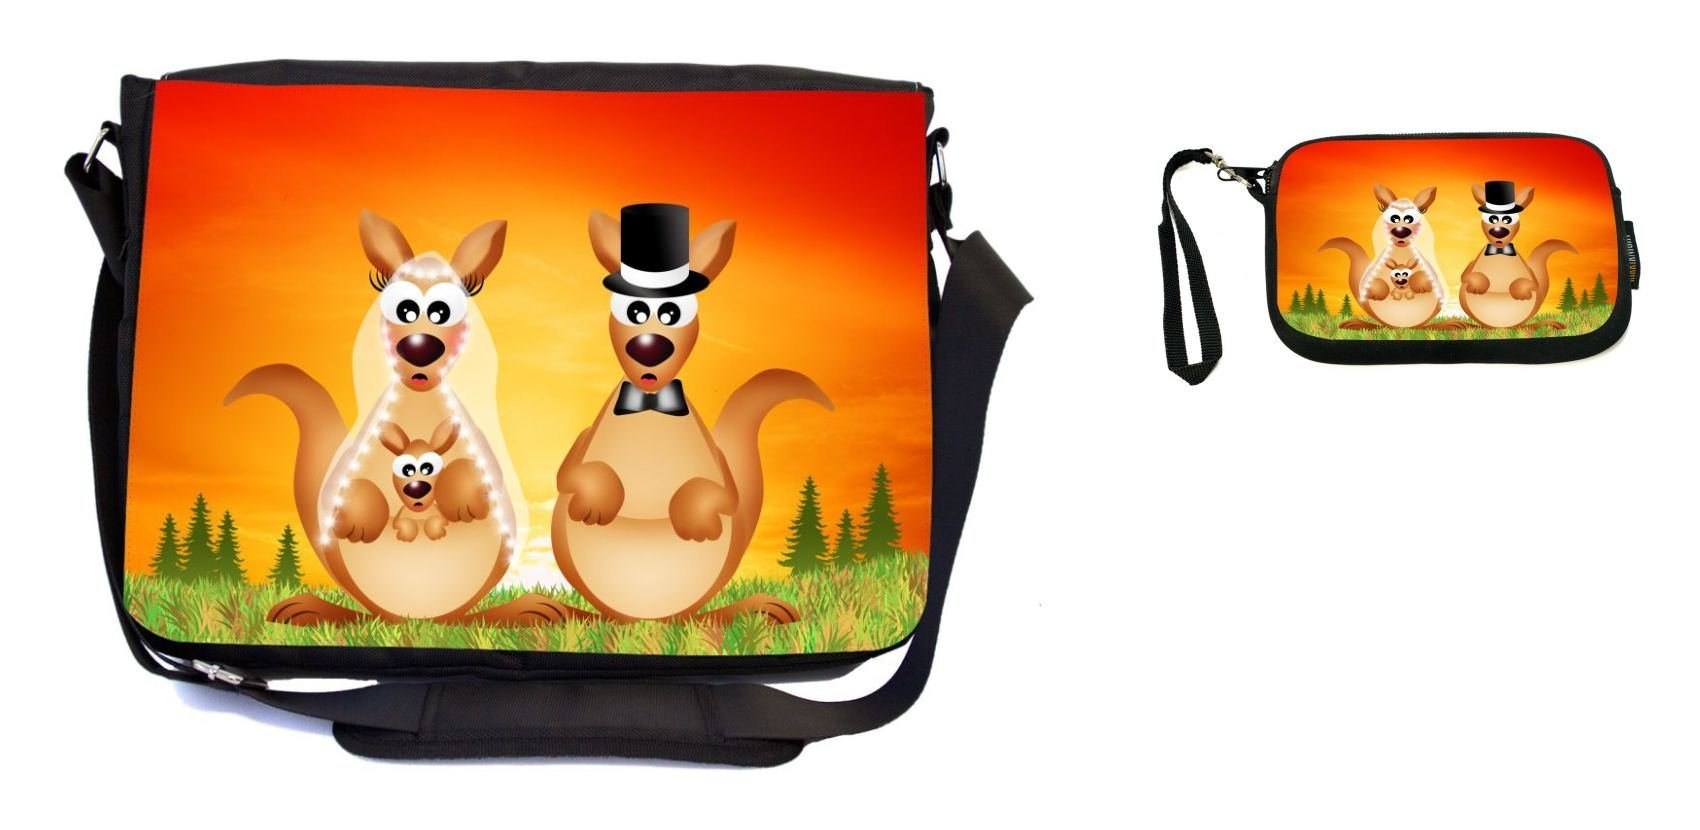 Rikki Knight Kangaroos in Love Wedding Illustration Design Messenger Bag - School Bag - Laptop Bag - with Padded Insert - Includes UKBK Premium Coin Purse